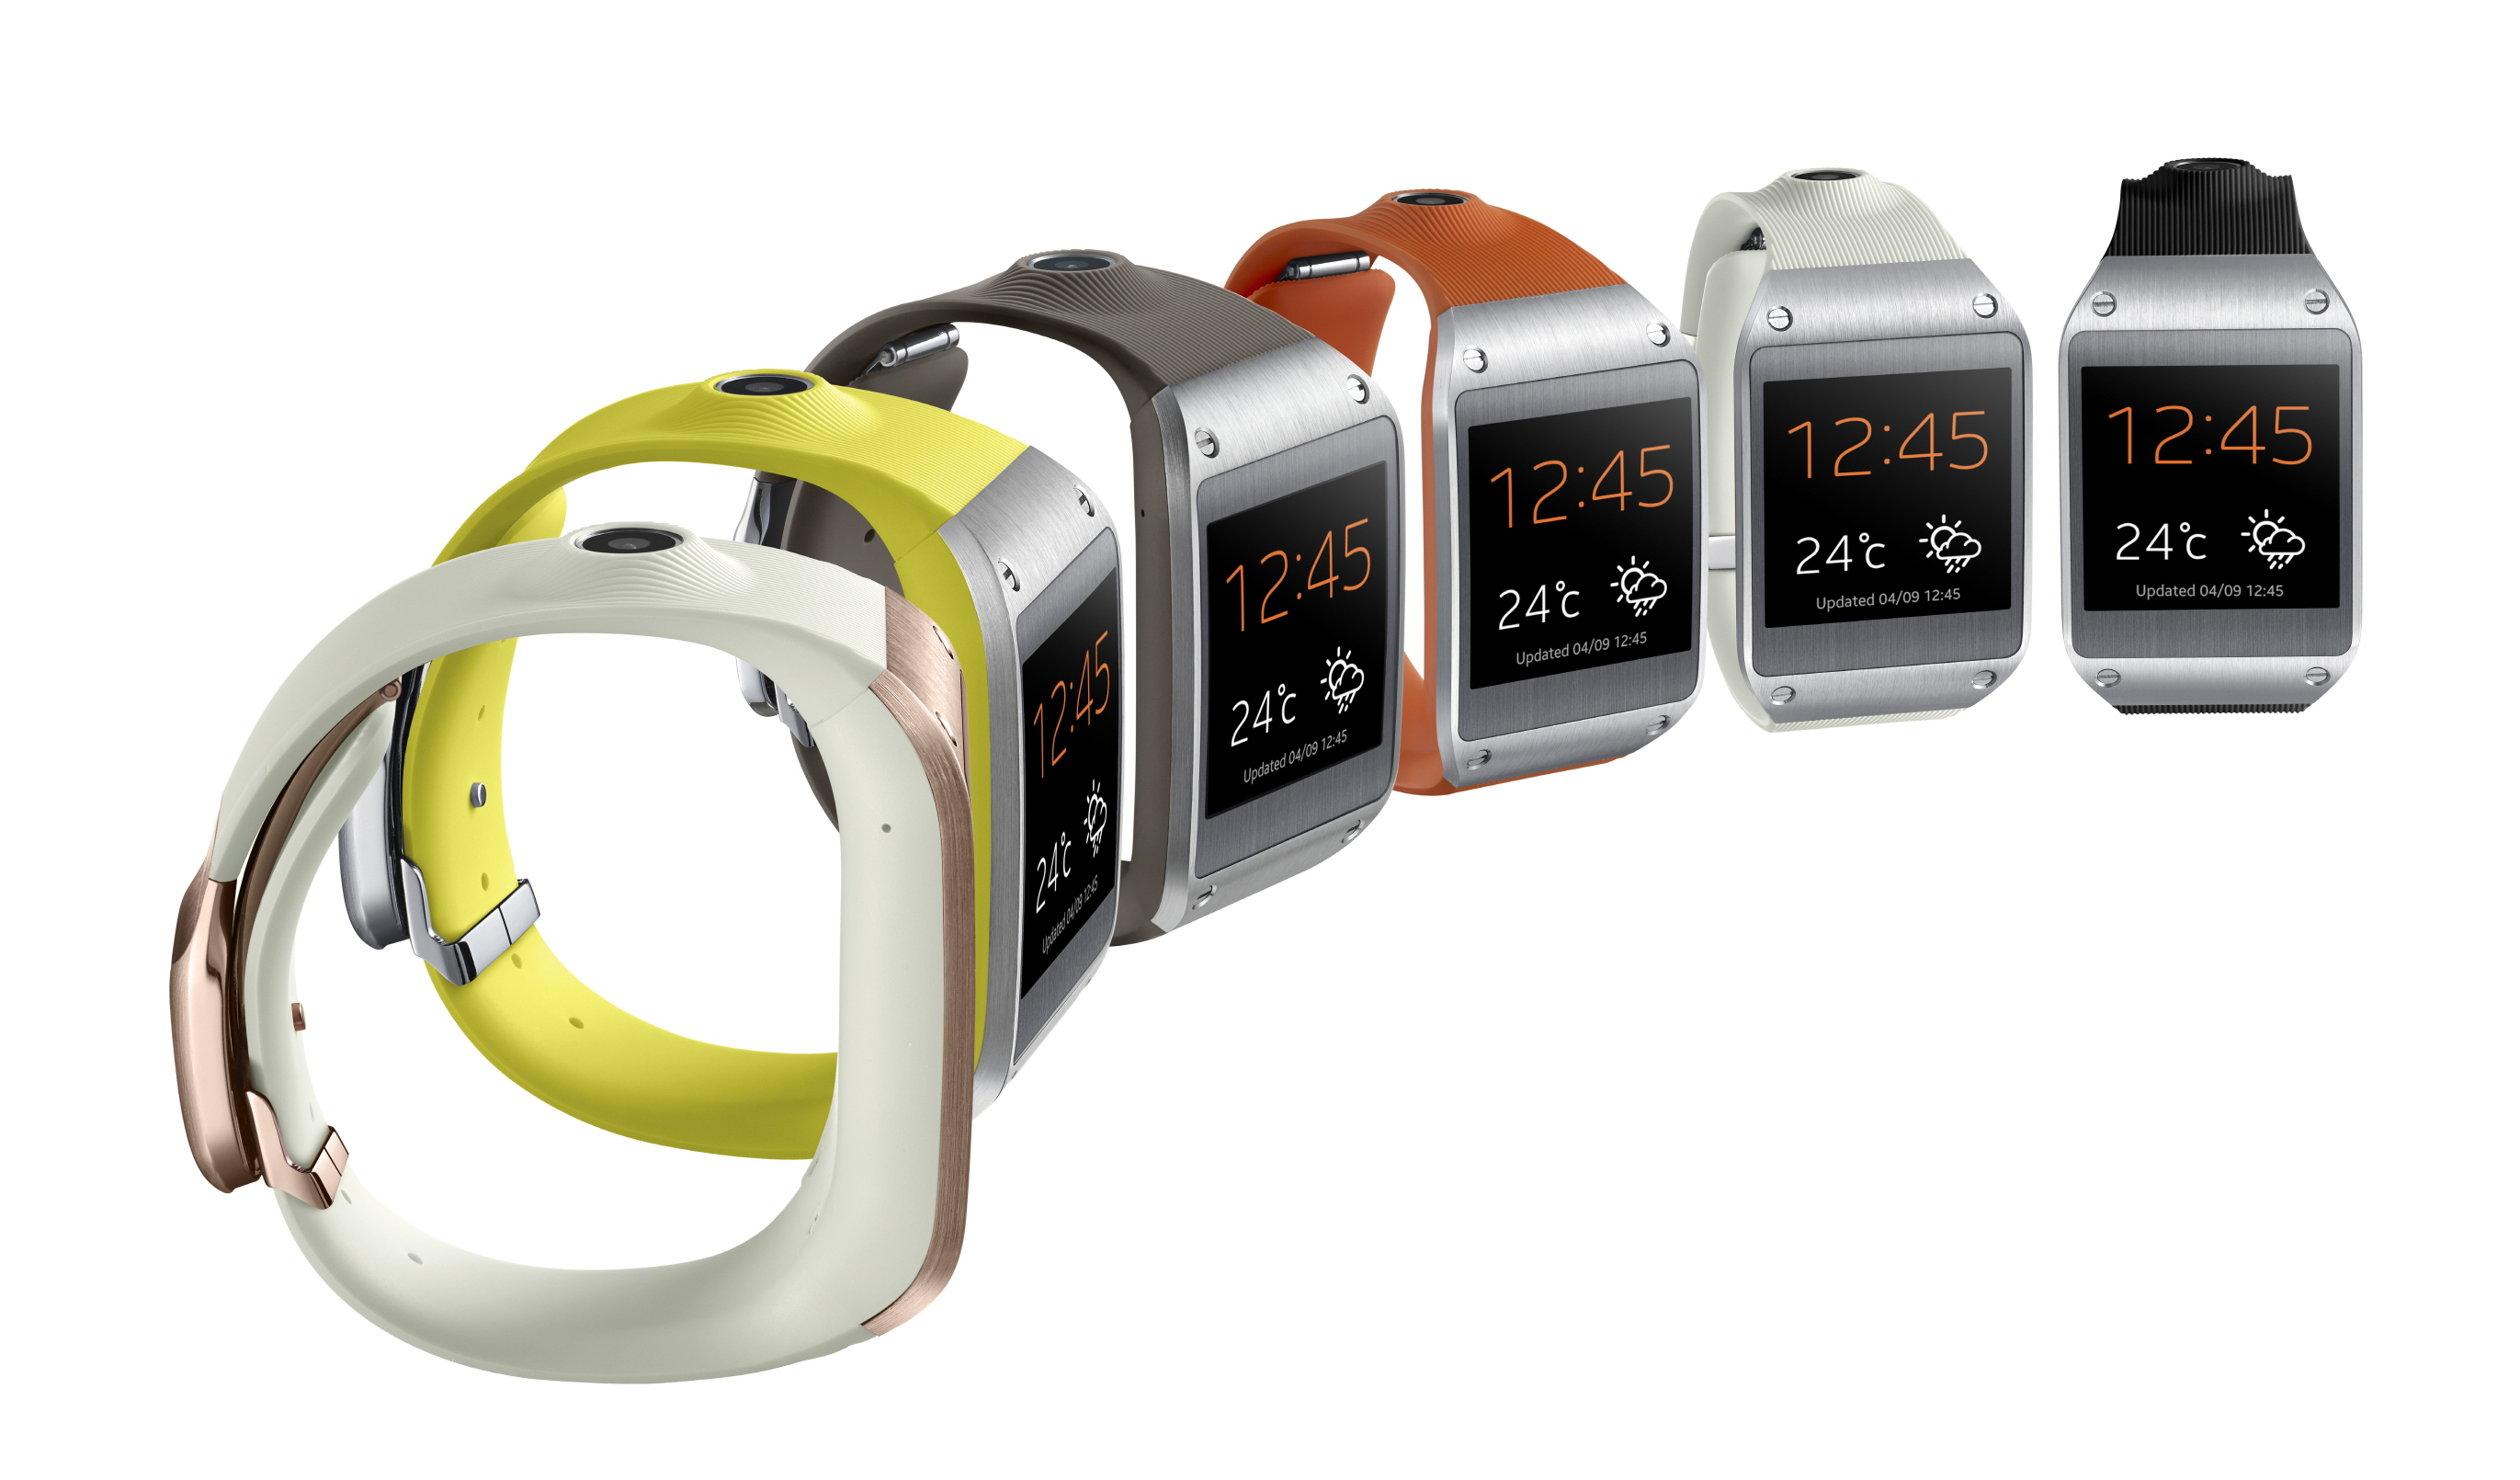 Galaxy Gear 008 Set1 Side Six Samsung announces Galaxy Gear smartwatch with voice control and a 1.9 megapixel camera